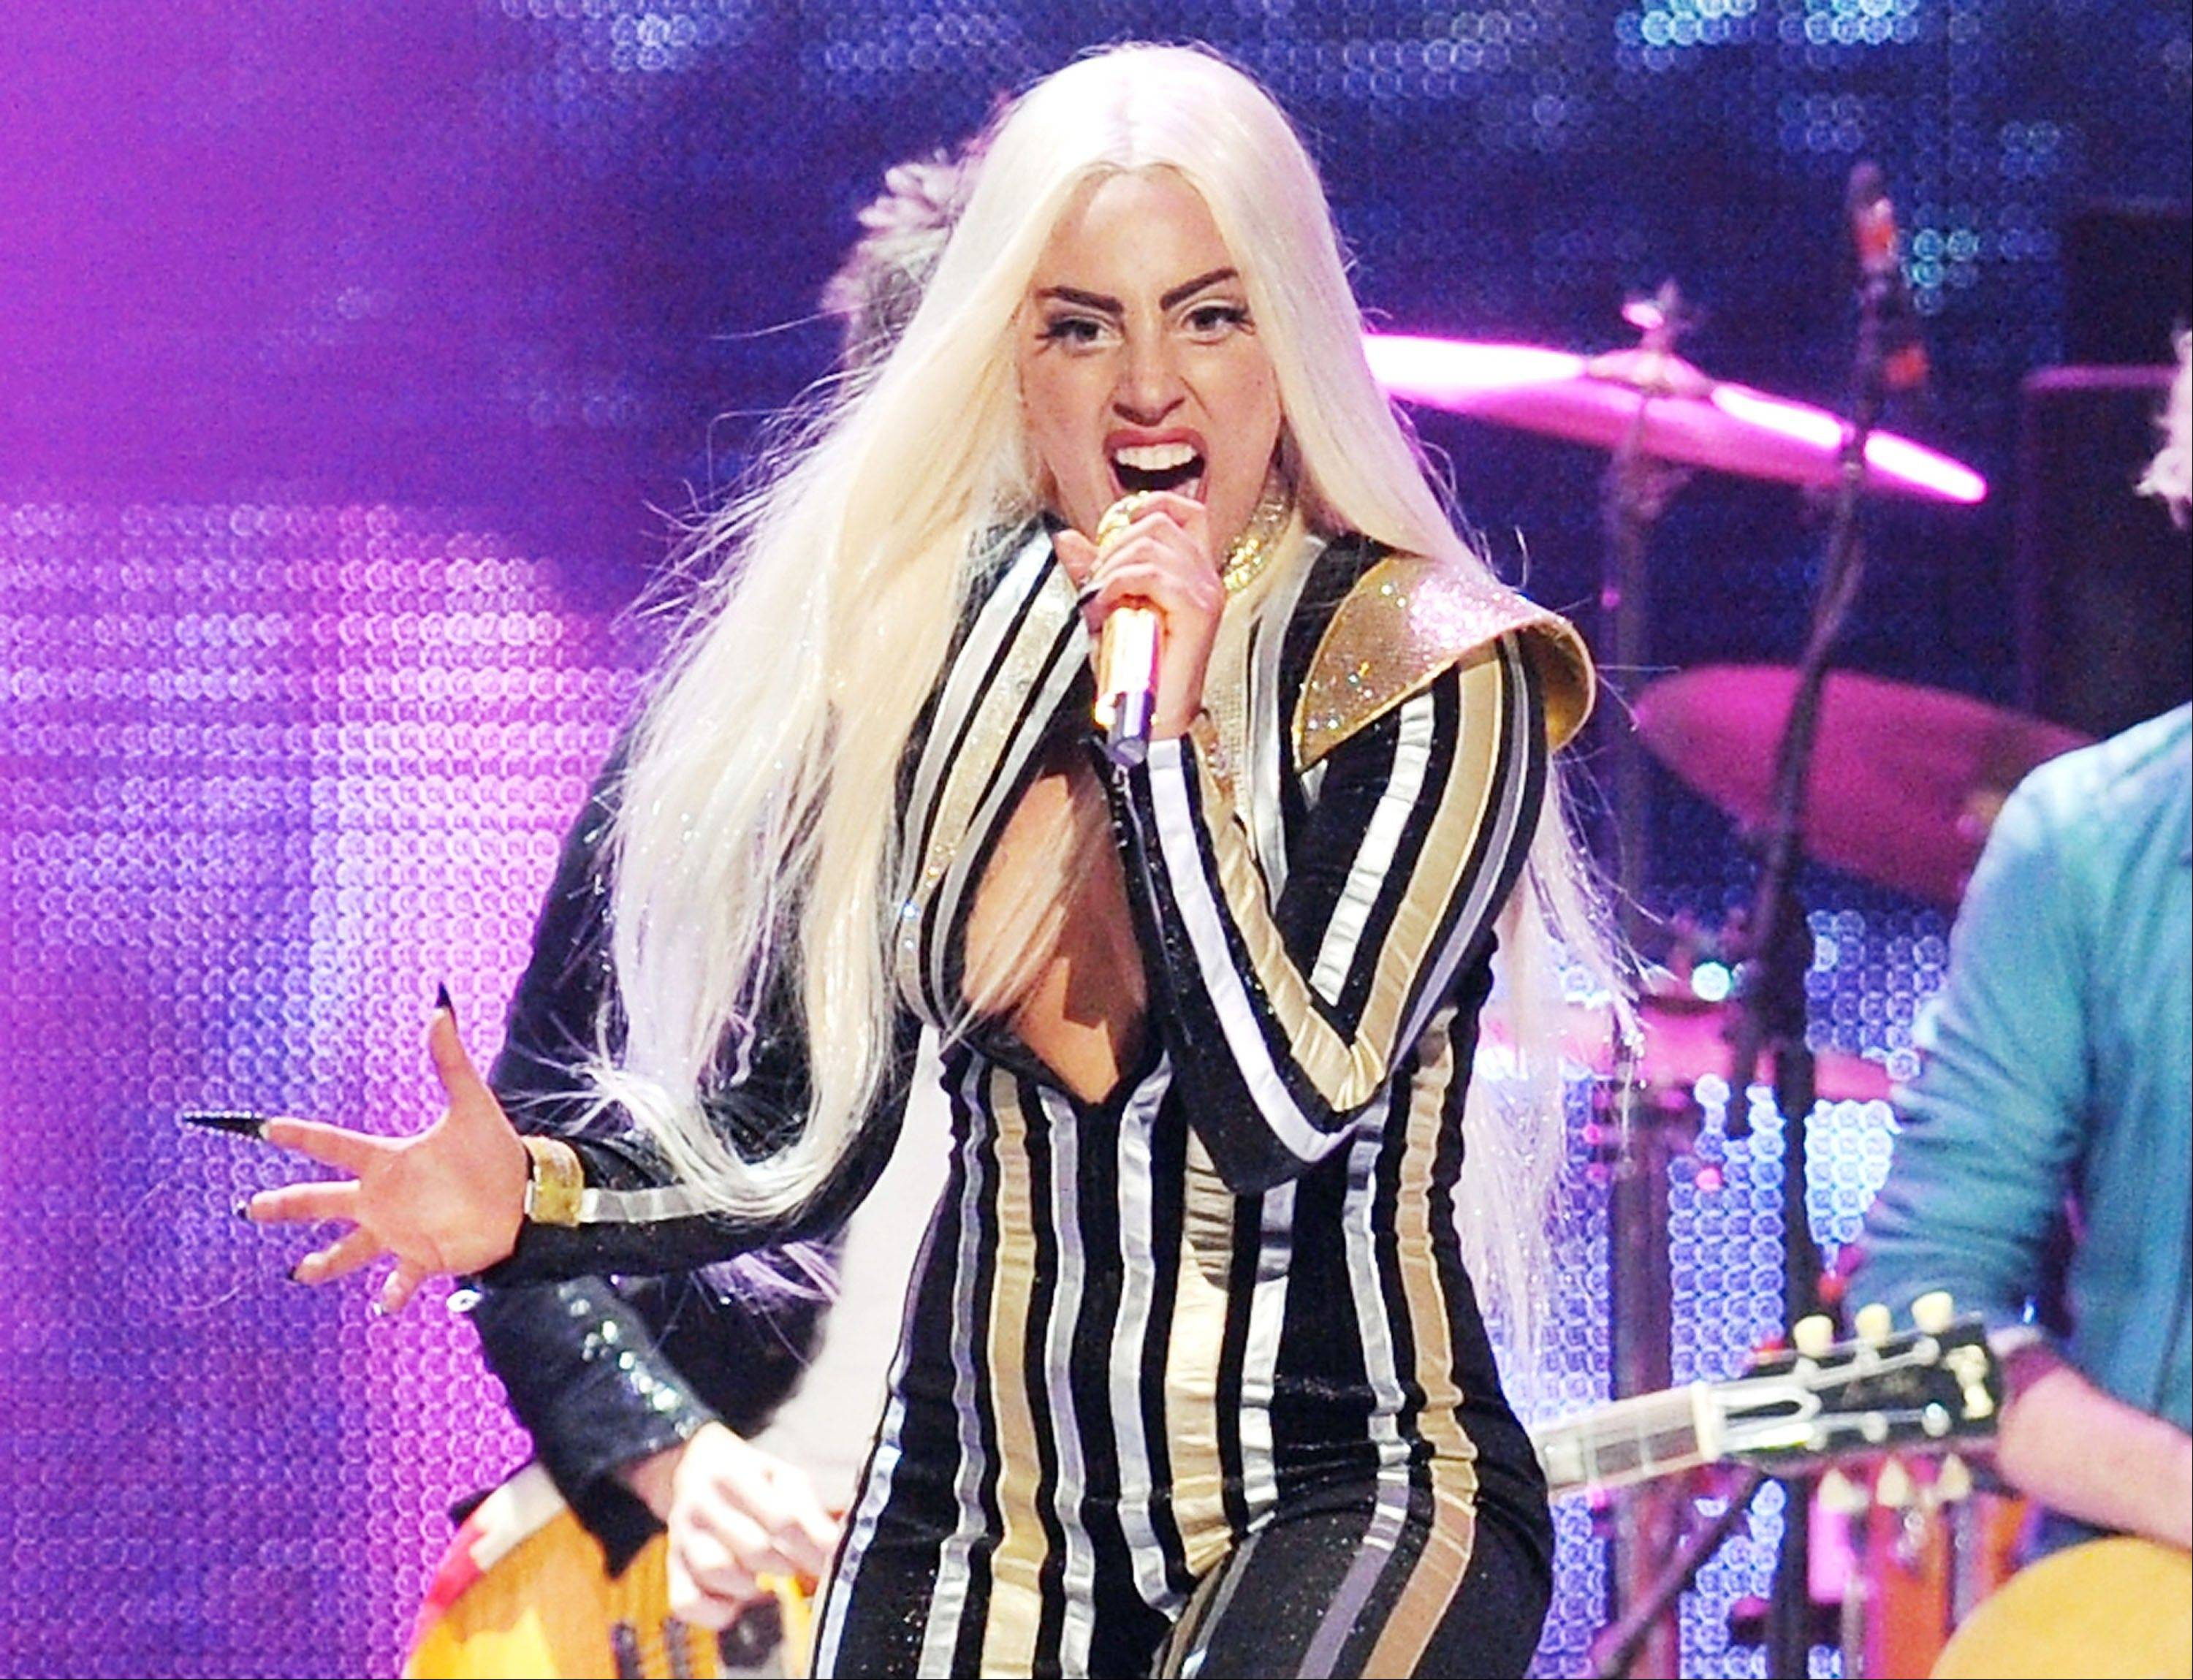 Singer Lady Gaga has canceled the remainder of her tour due to a hip injury that will require surgery.